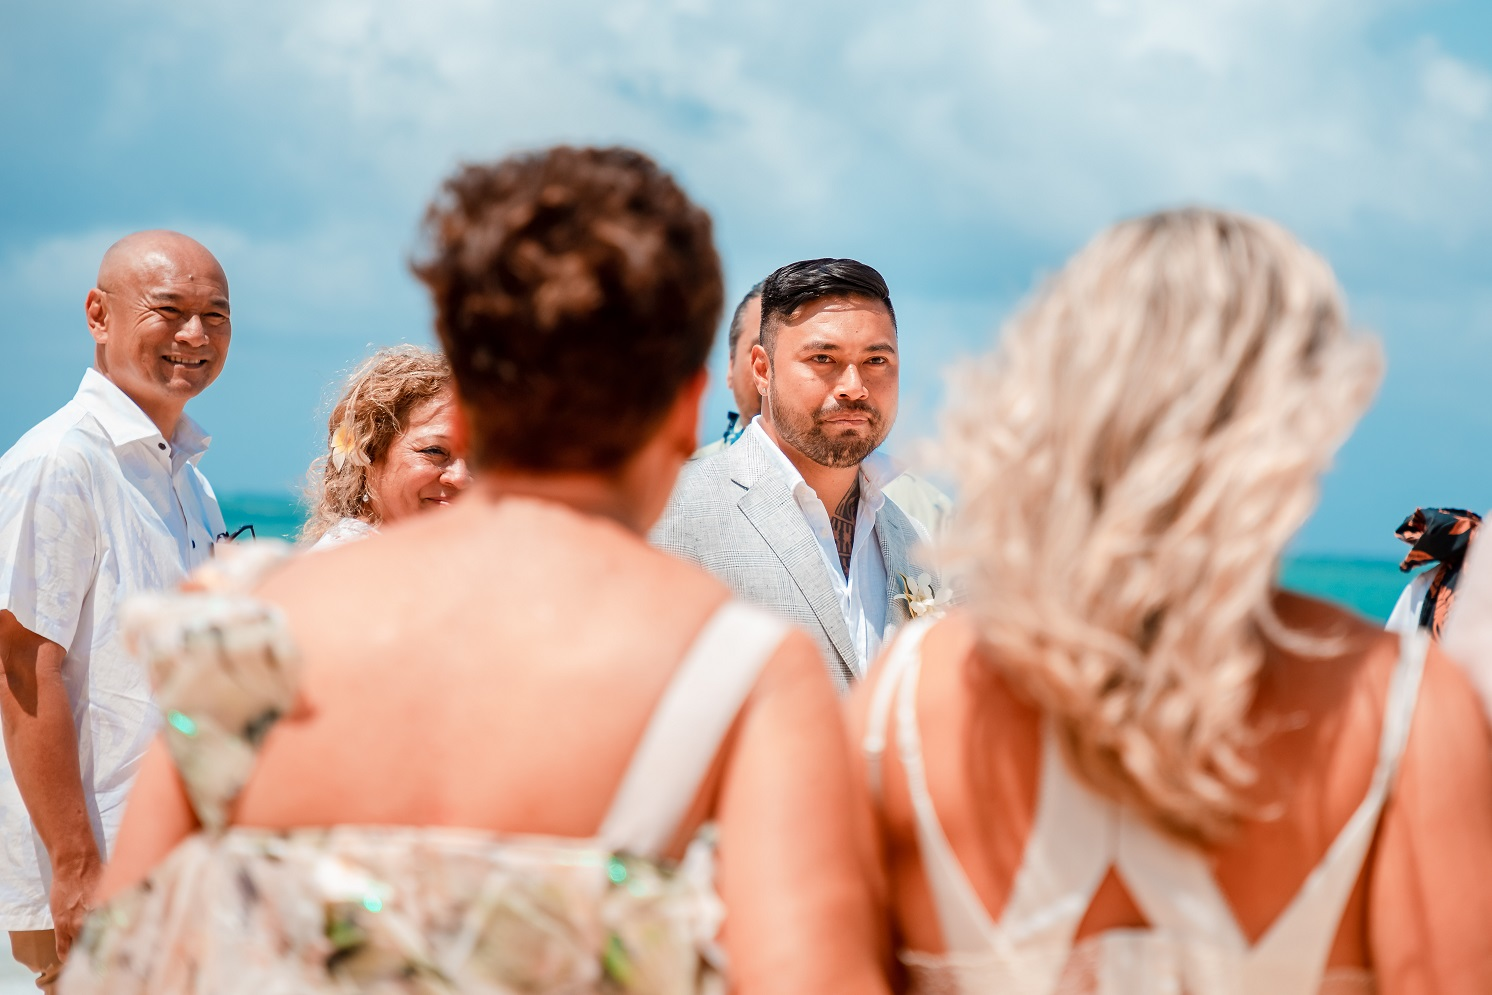 grooms first look at bride oahu beach wedding elopement